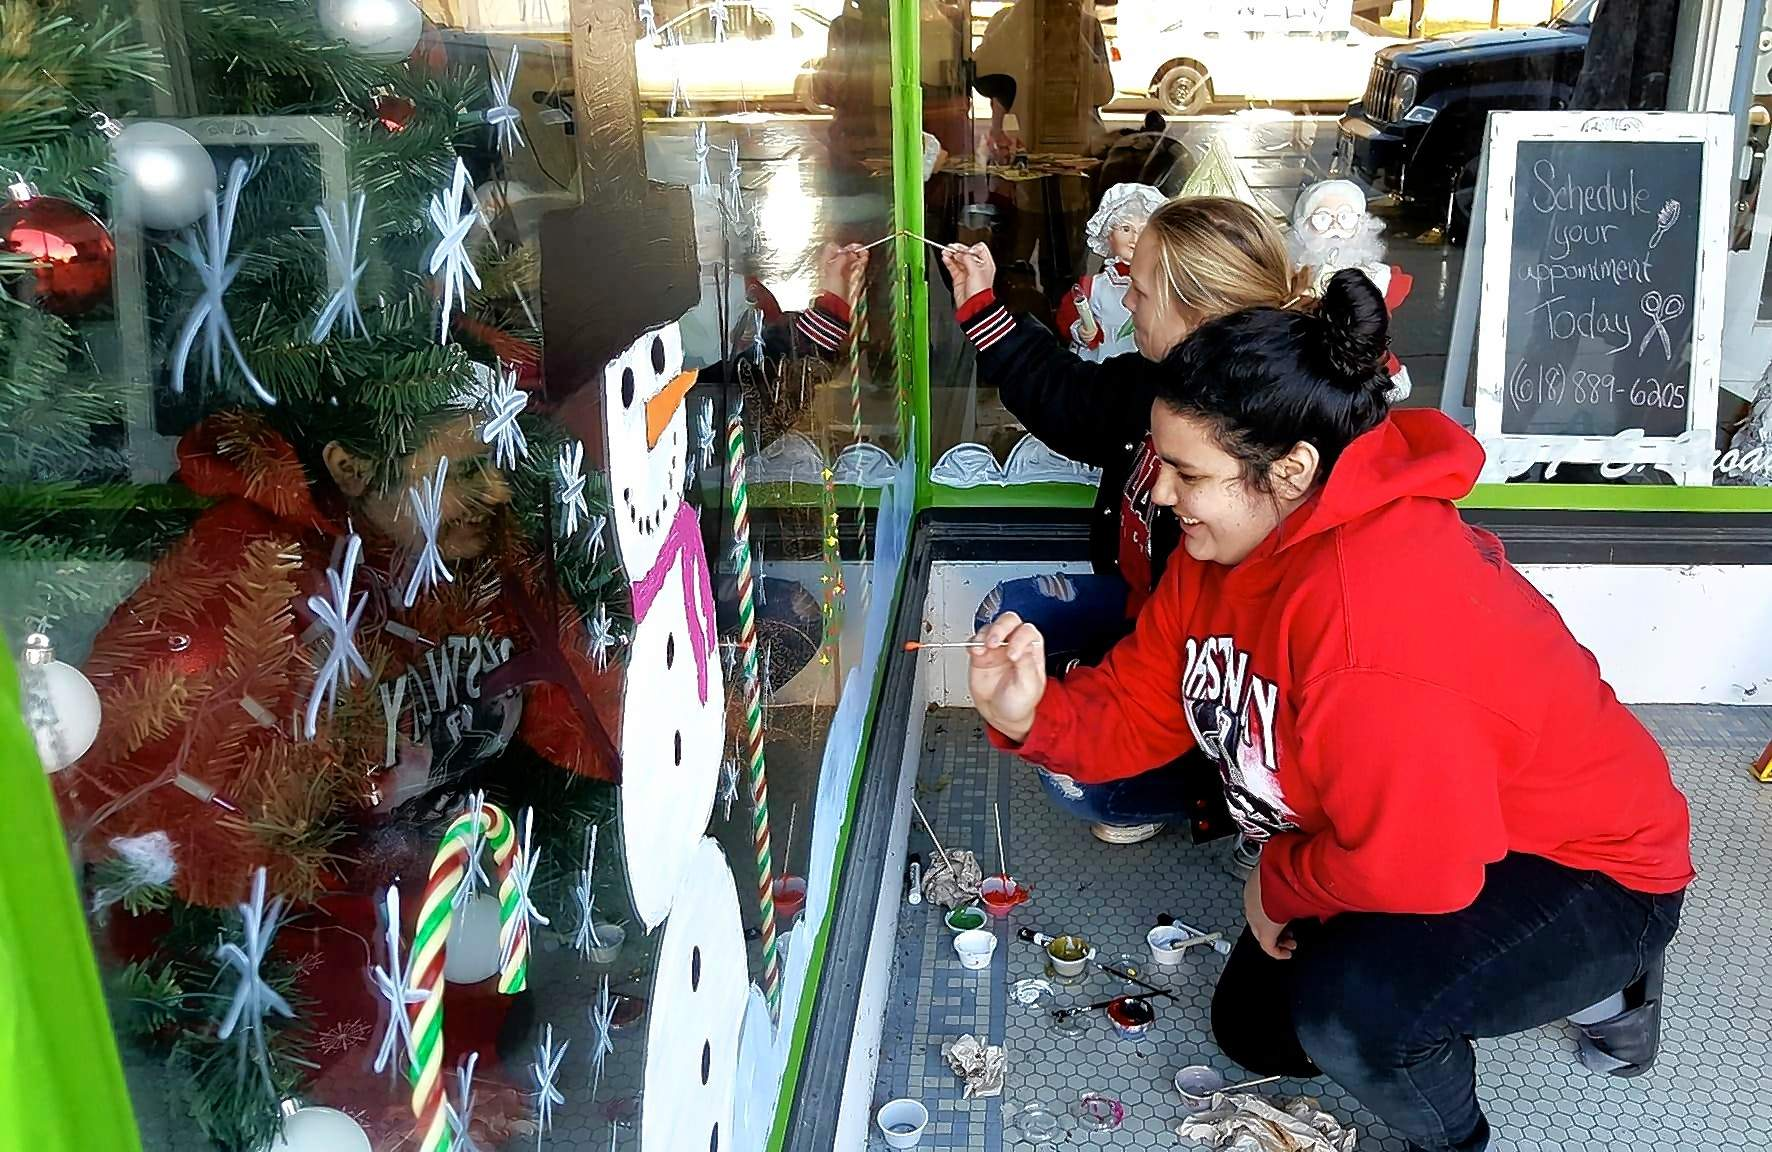 Nevaeh Casanova, front, and Kendall Overtuf work on creating a traditional Christmas scene on the windows at Steal the Show. Both girls are freshman art students at Johnston City High School.